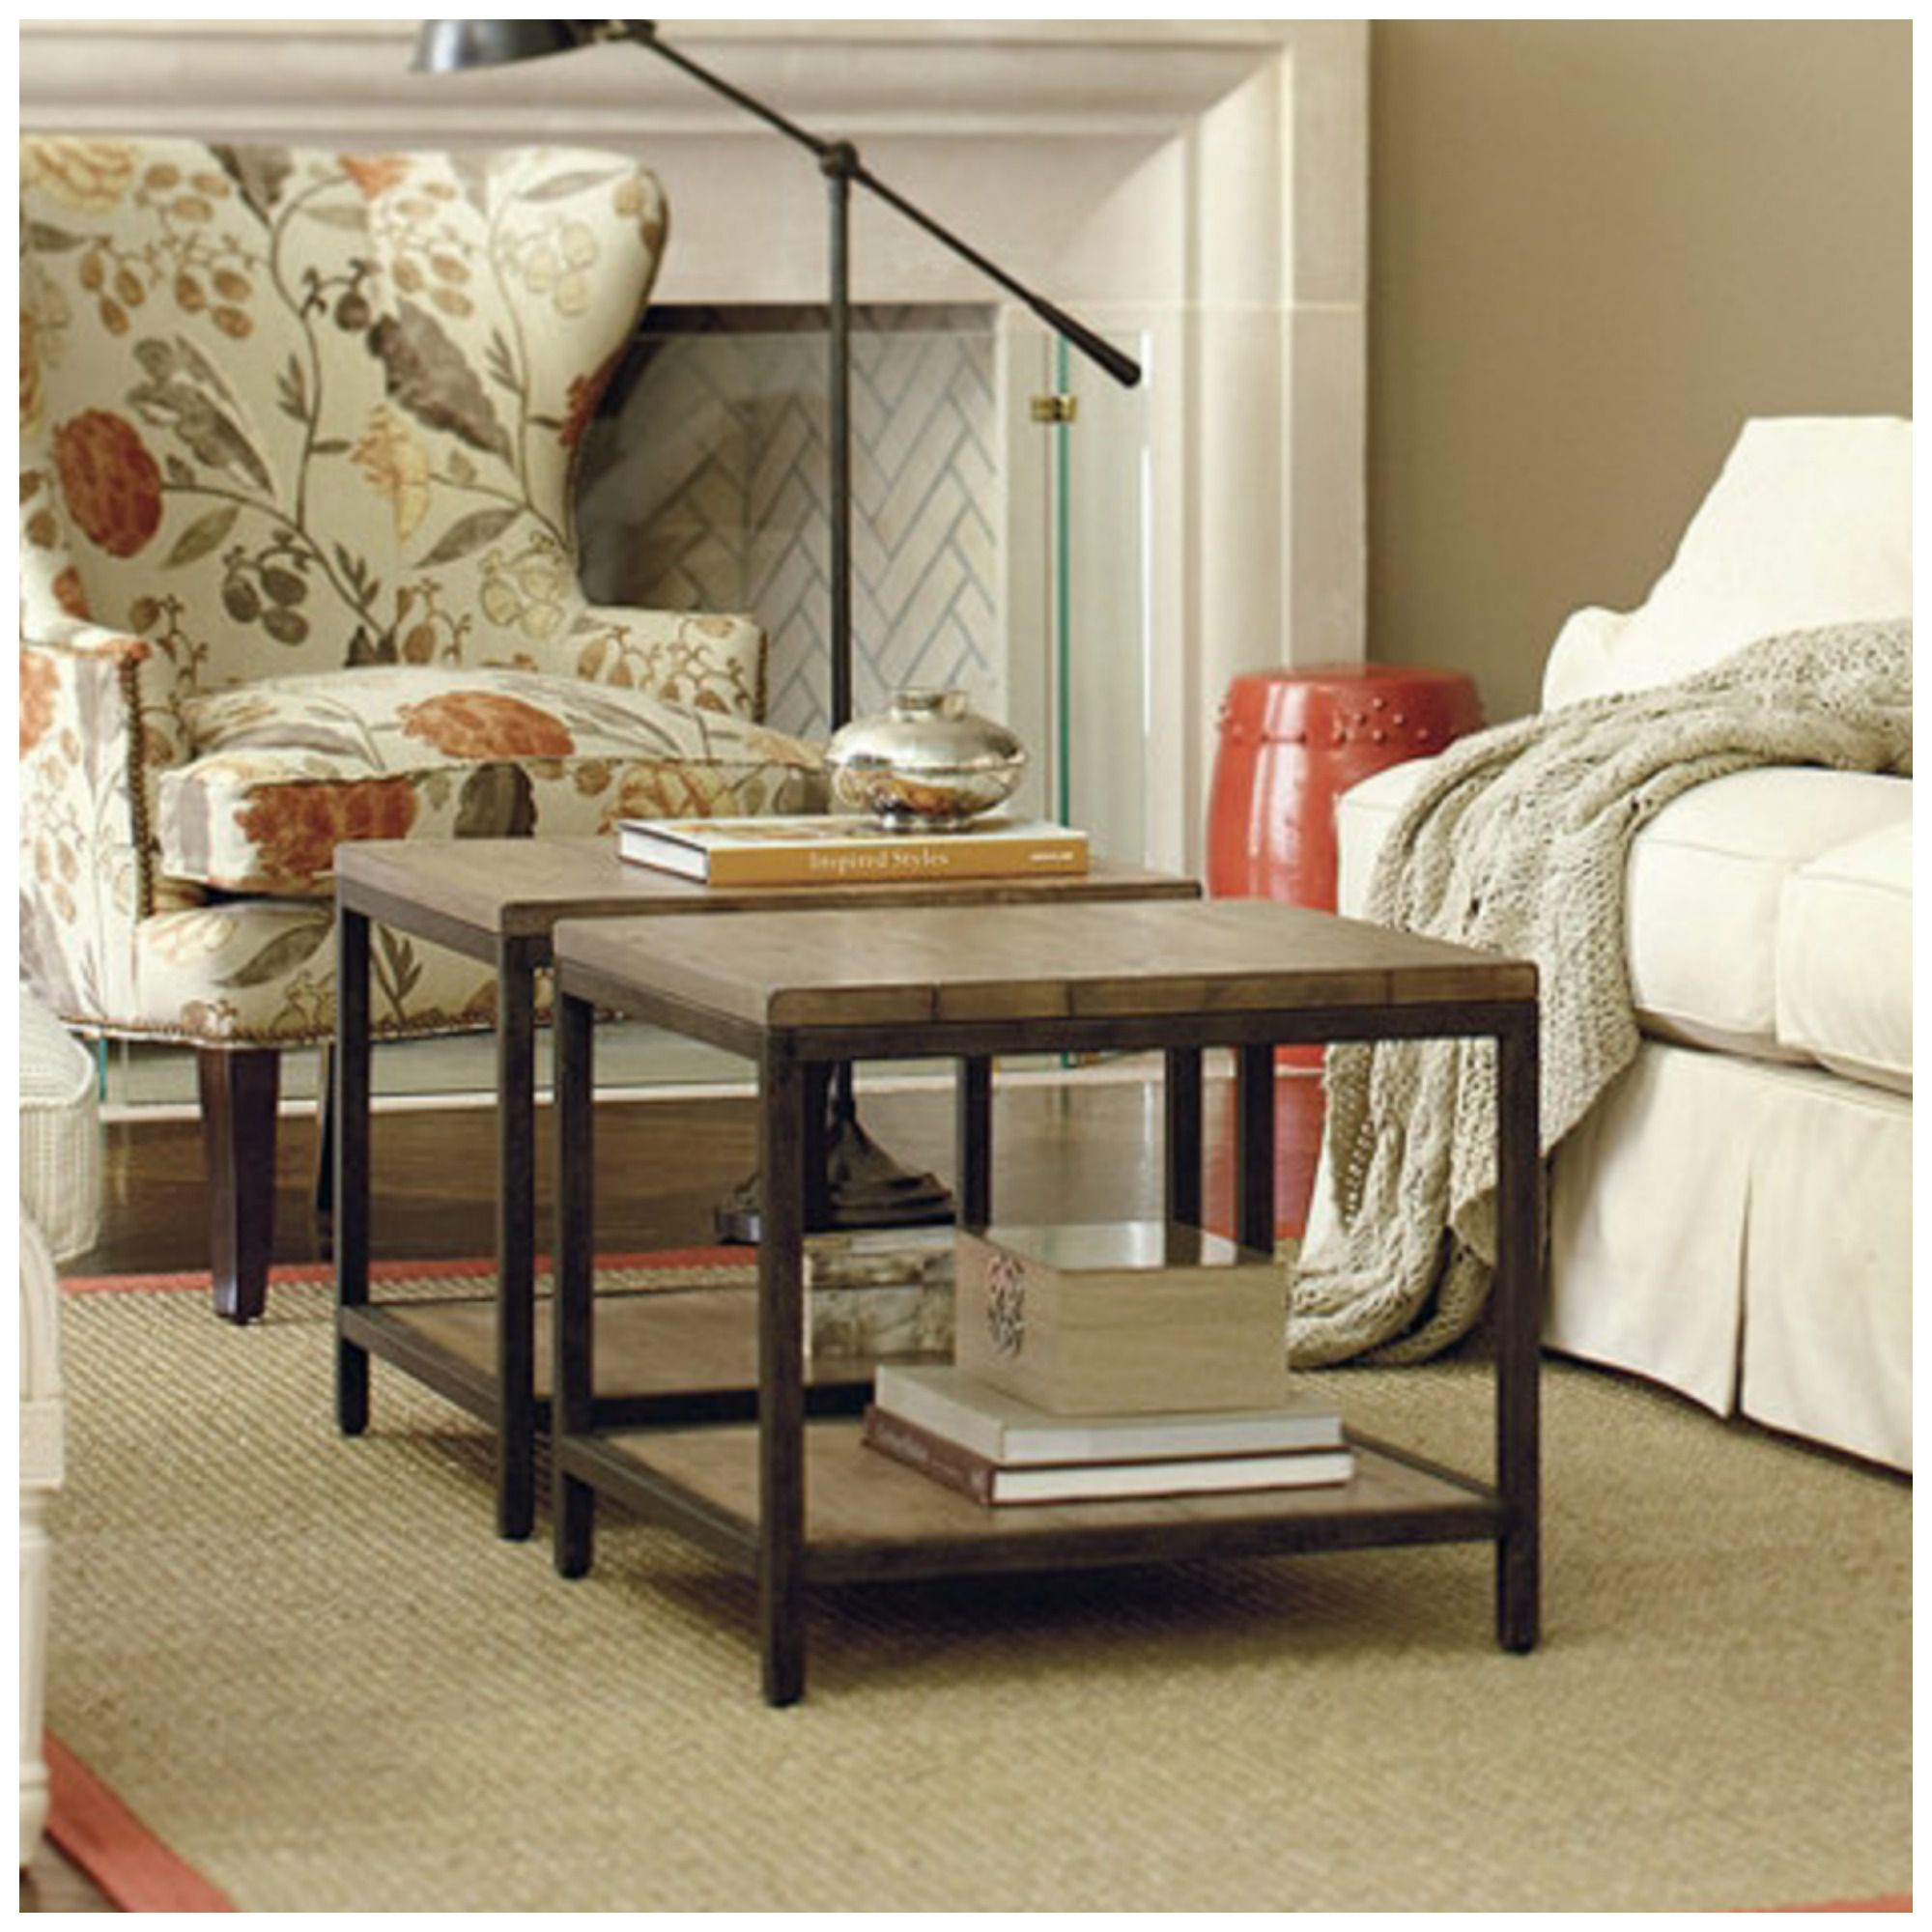 7 coffee table alternatives for small living rooms - Brickmakers coffee table living room ...